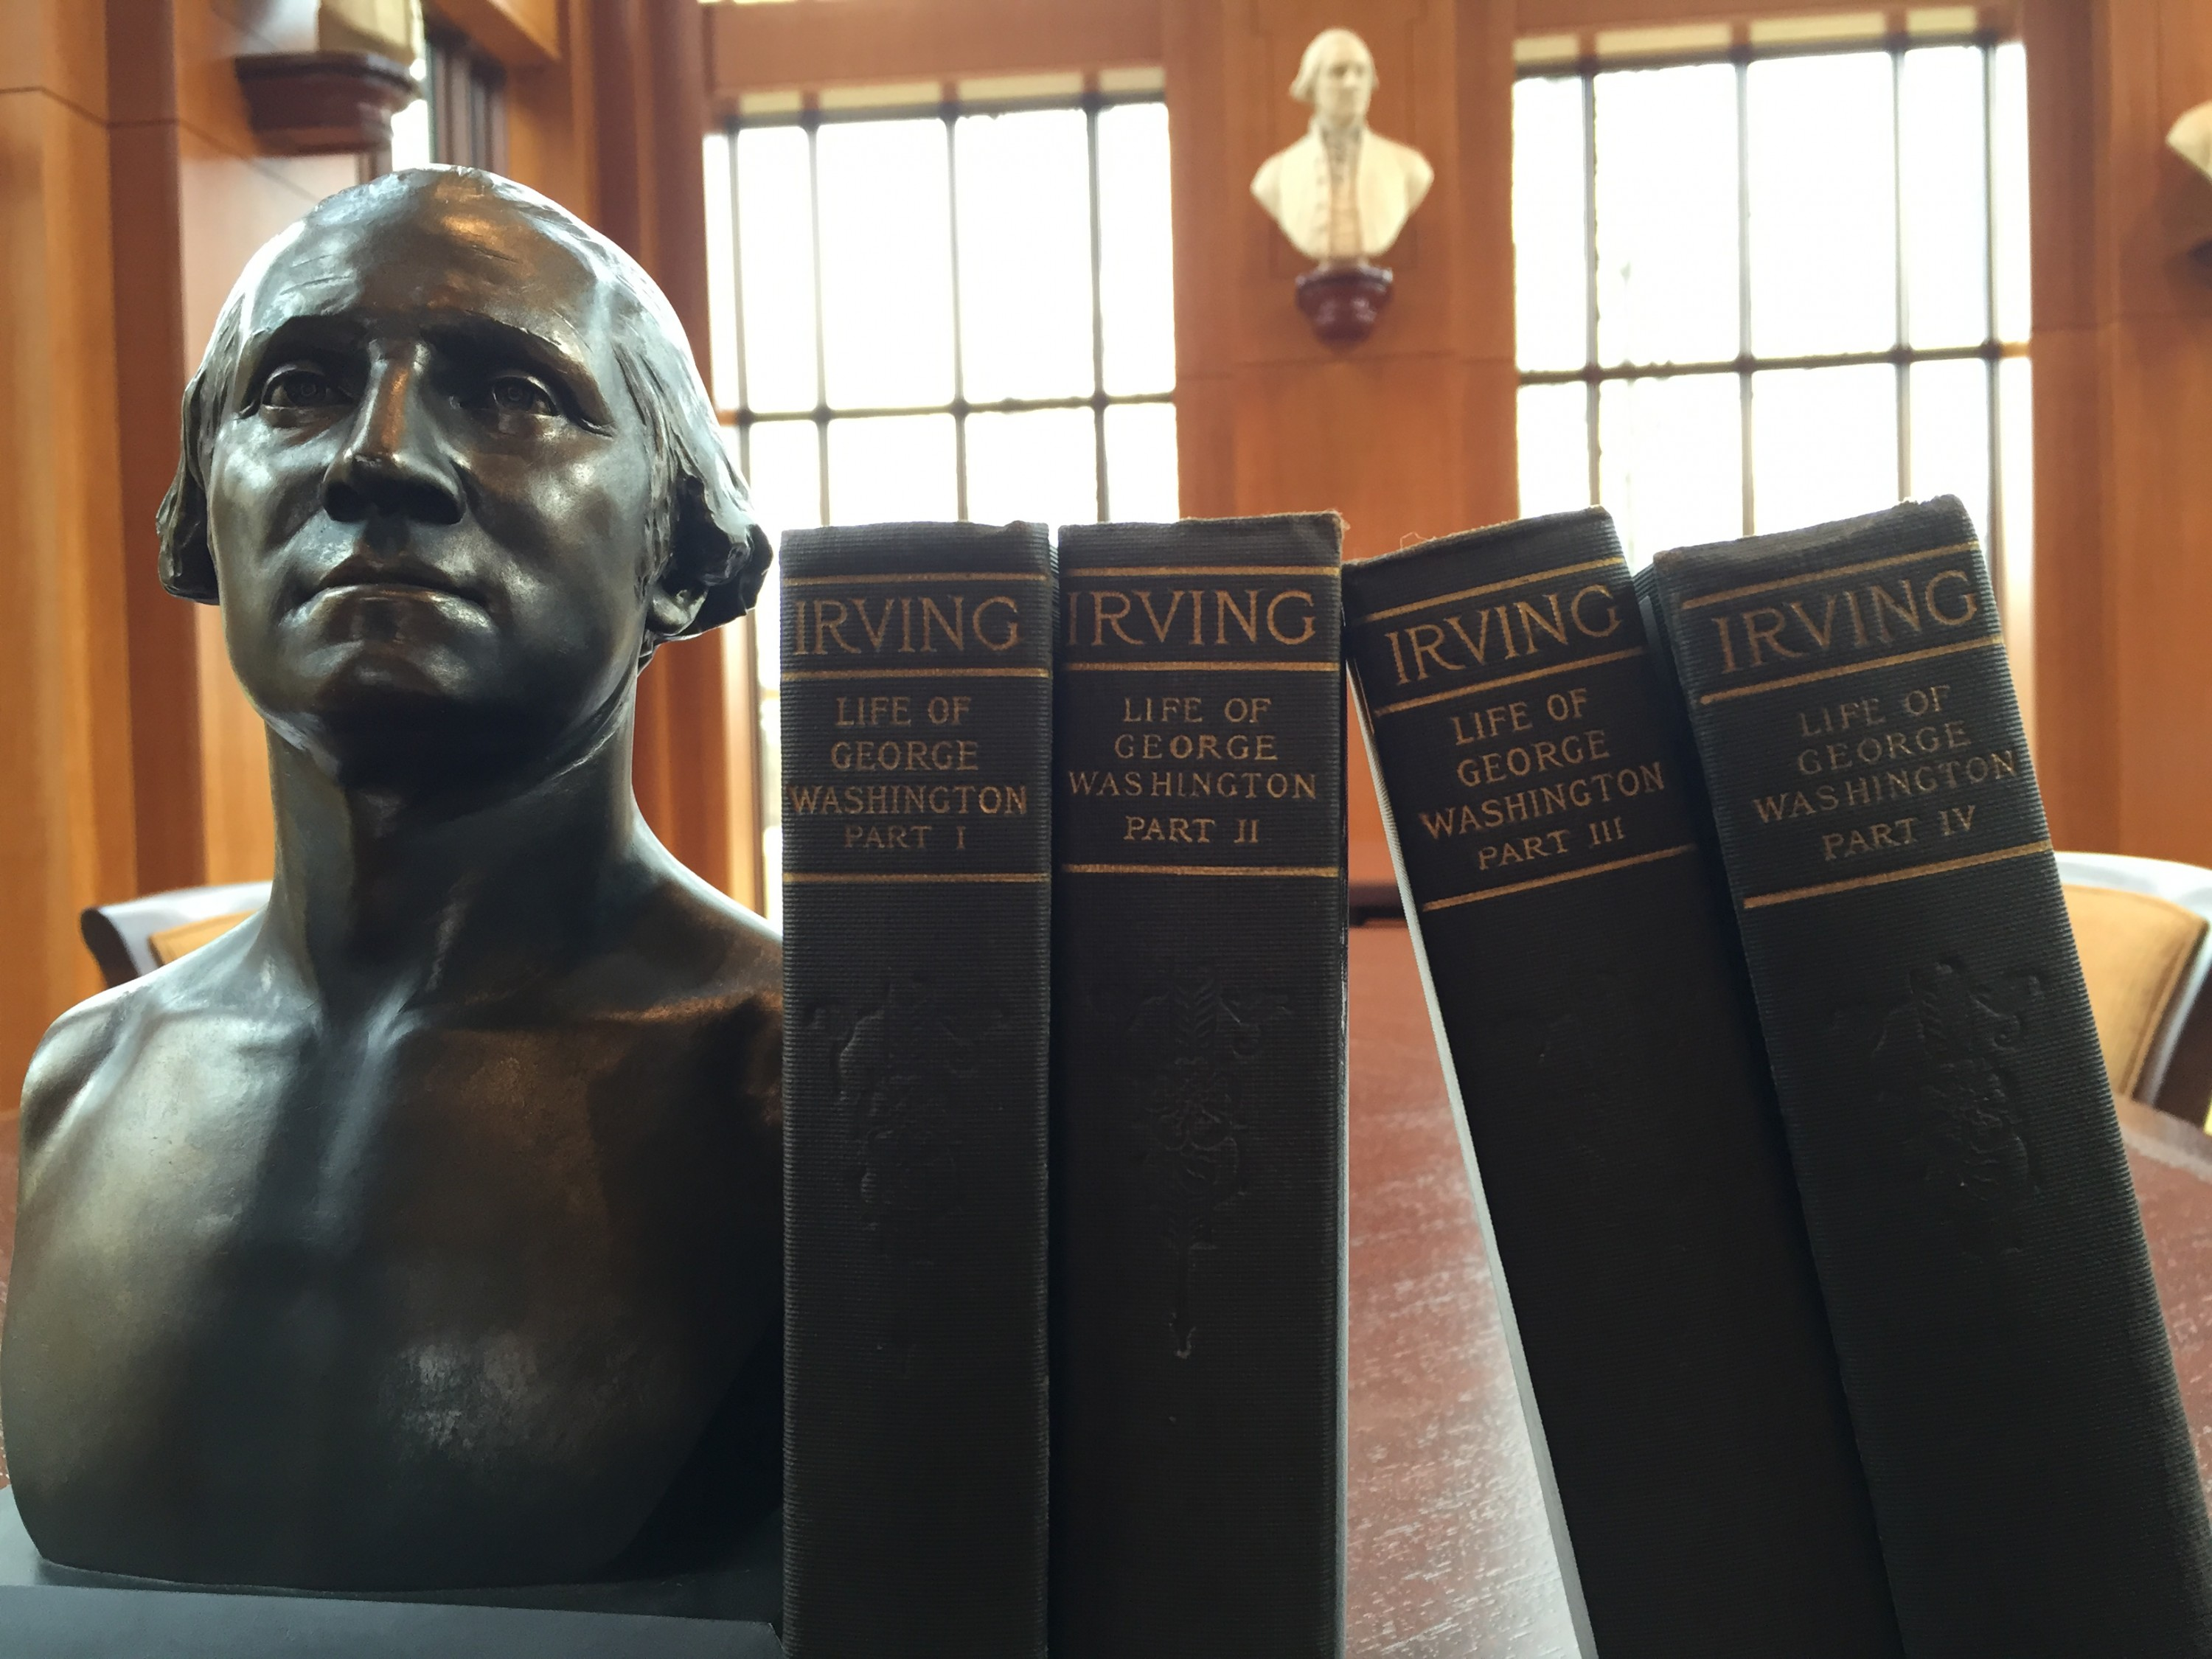 Washington Irving's Life of George Washington in the Washington Library - MVLA